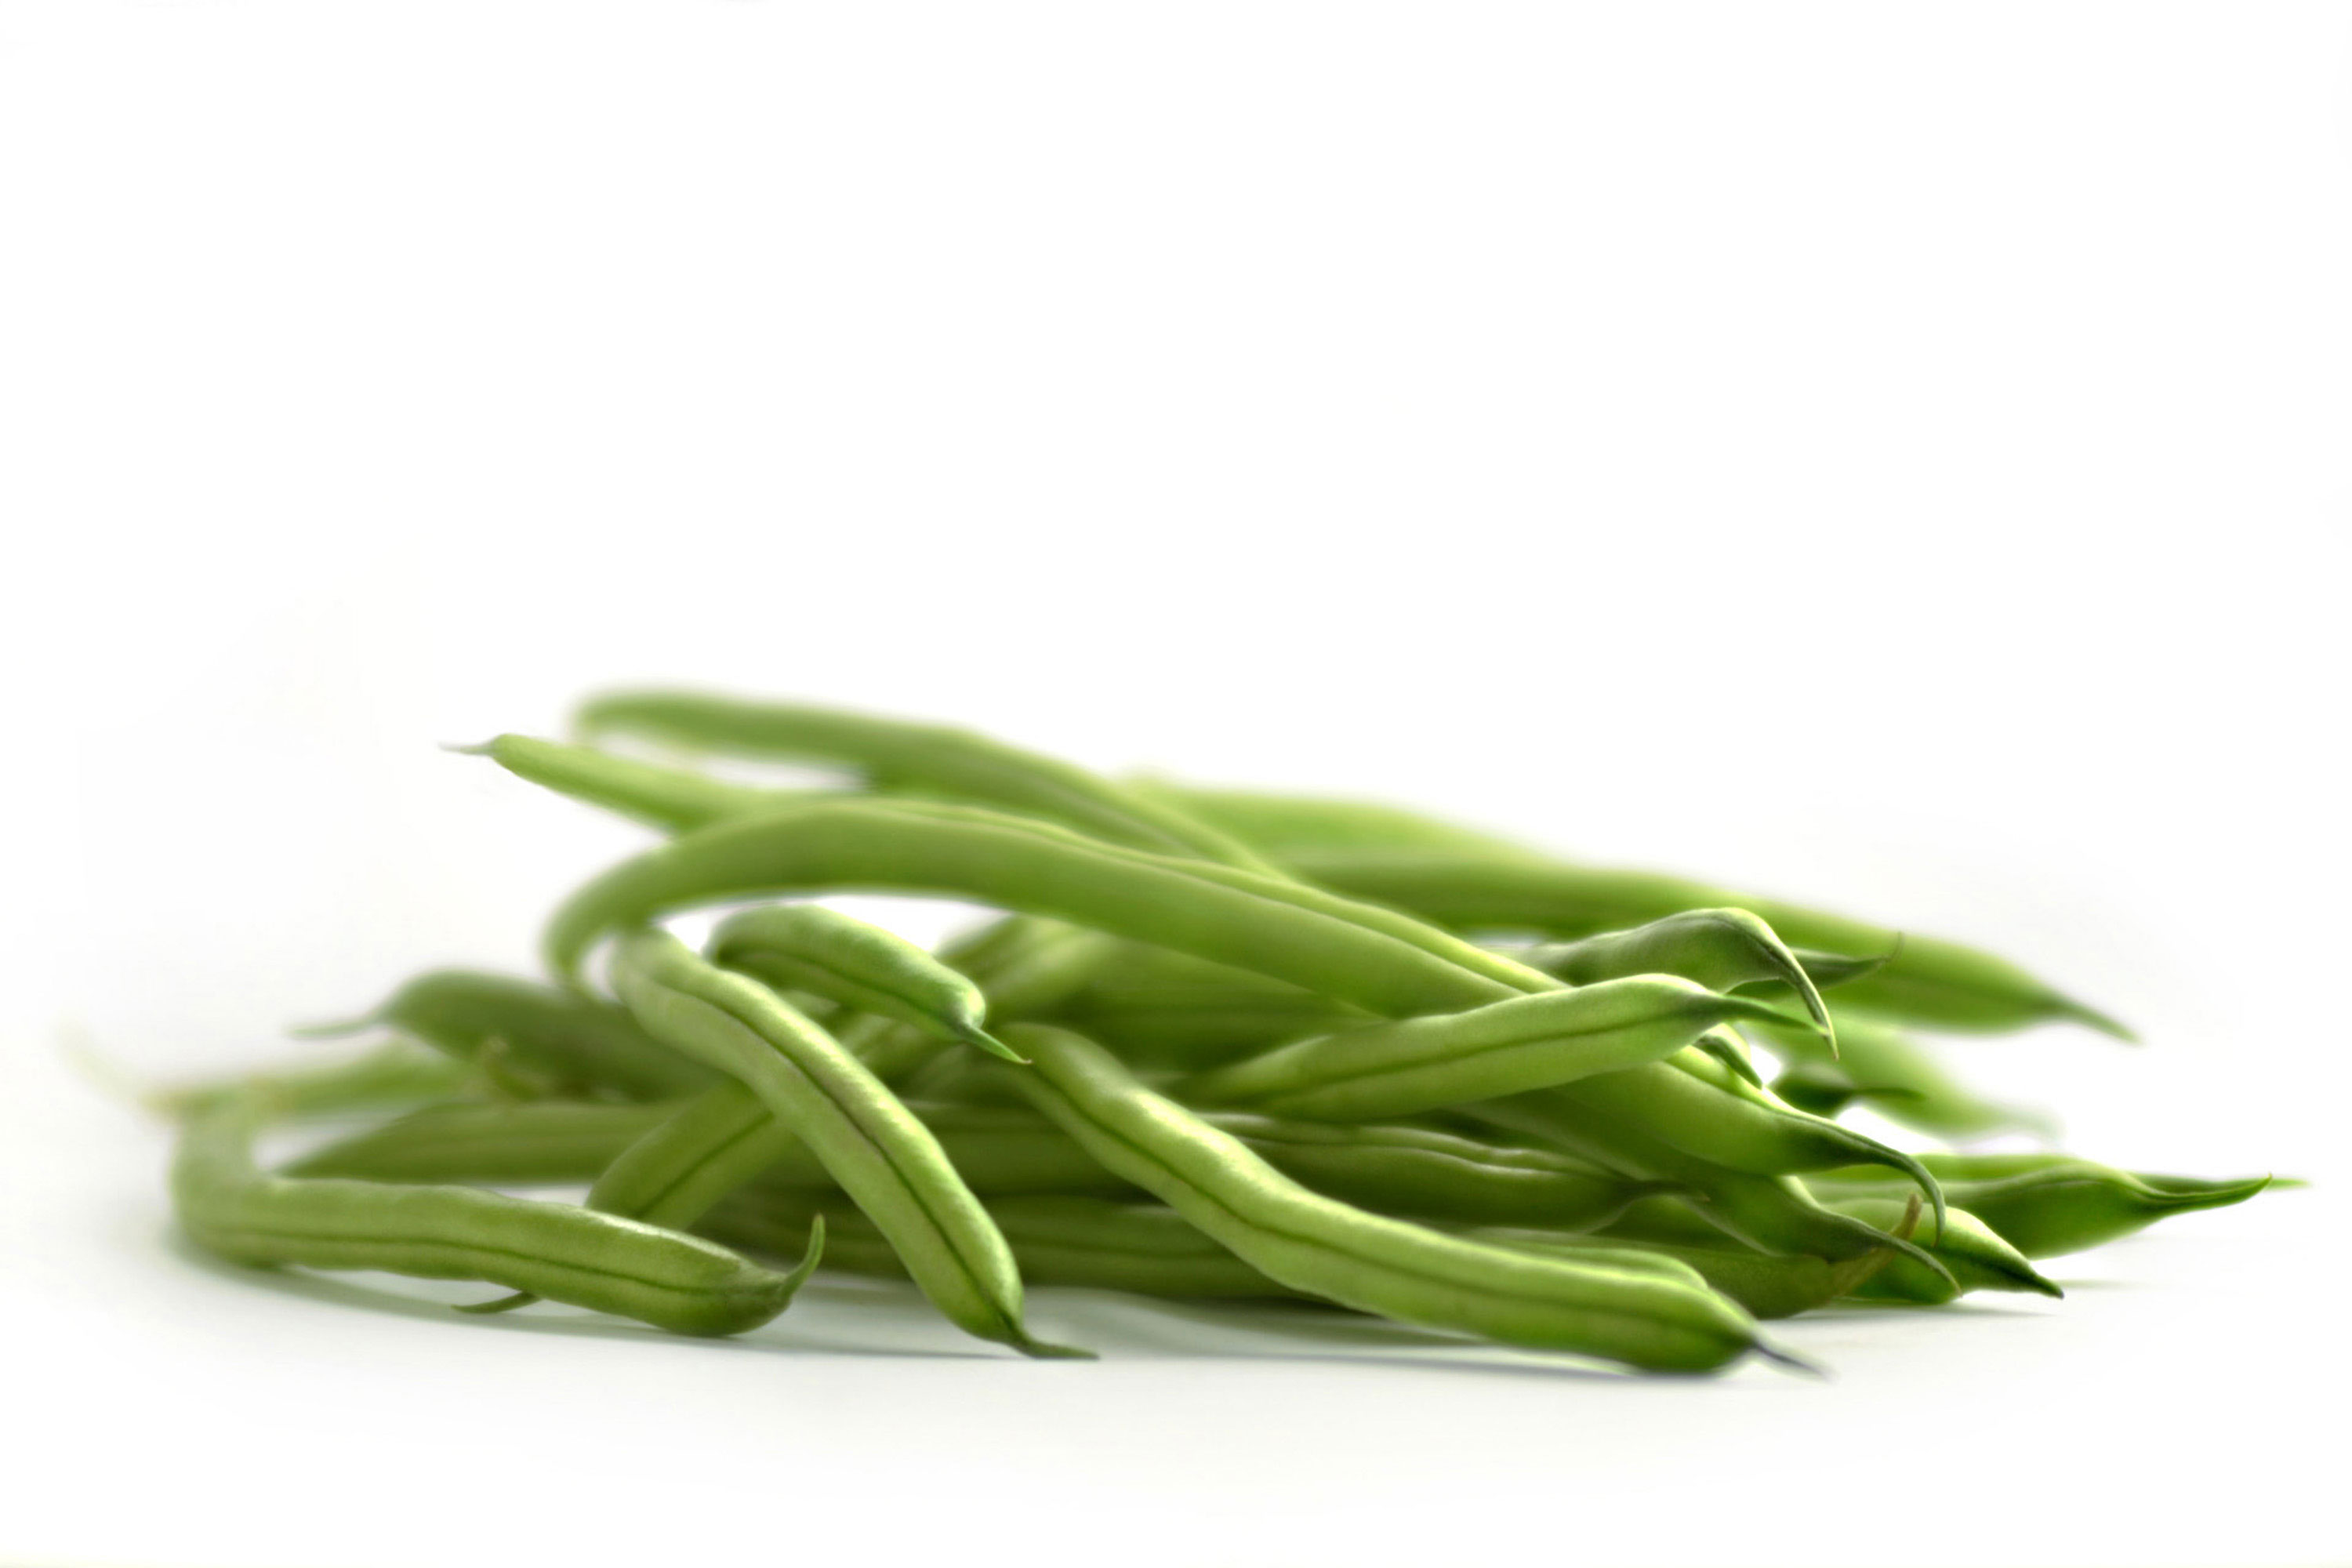 Beautiful-produce-photography-of-fresh-raw-green-beens